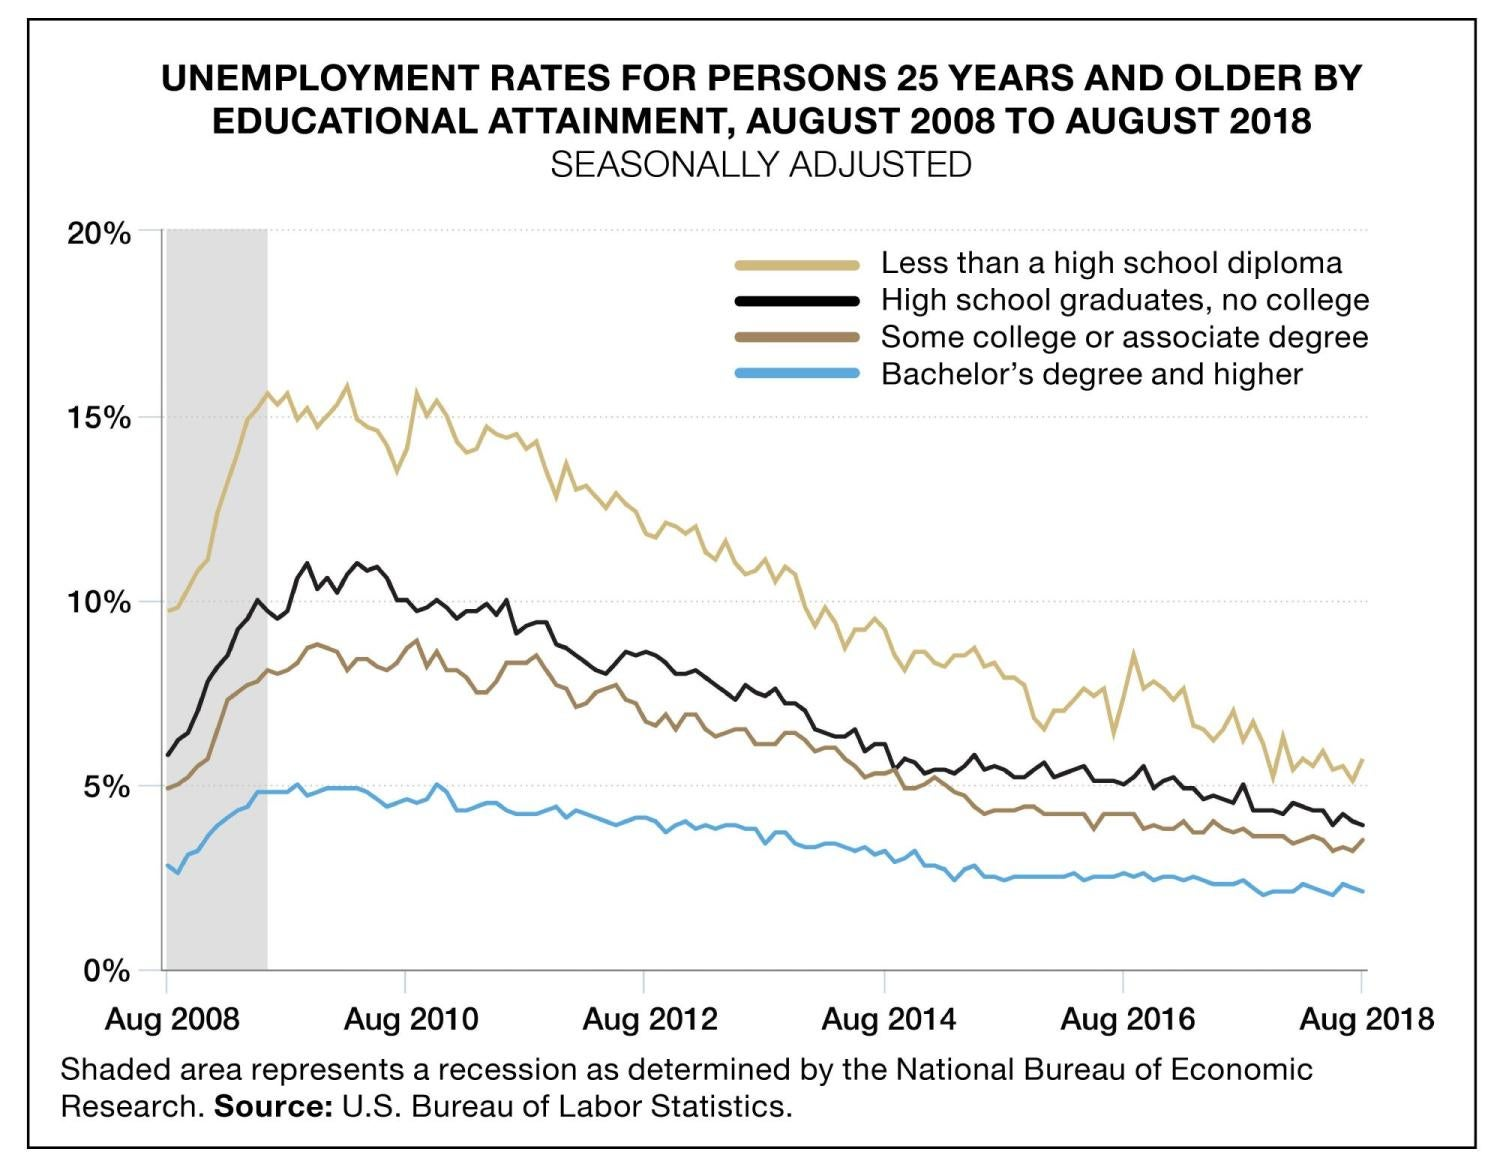 Graphic showing the unemployment rates fir persons 25 years and older by education attainment, August 2008 to August 2018